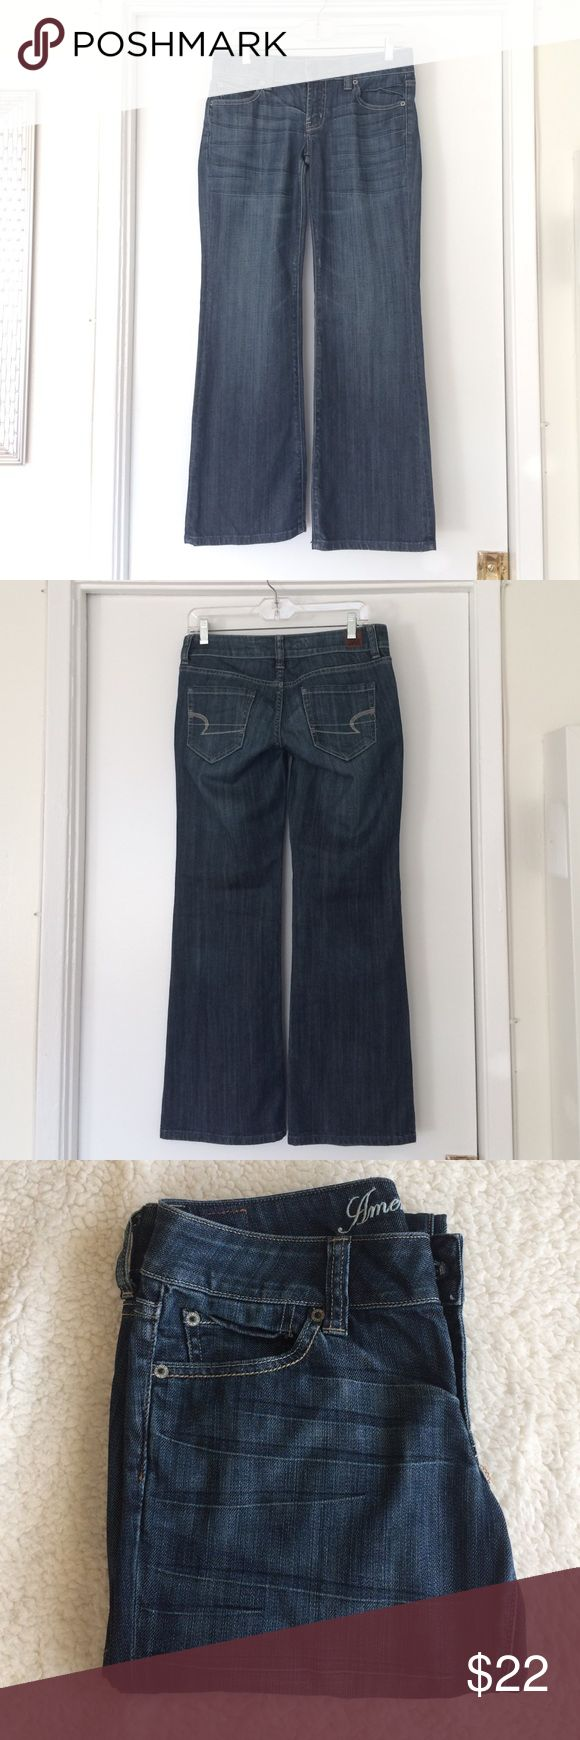 """American Eagle Outfitters Favorite Boyfriend Jeans American Eagle Outfitters Favorite Boyfriend Jeans with a wide trouser leg. This American Eagle jeans is considered """"short"""" instead of """"regular"""". Perfect for short girls. Only worn a few times. Open to trades & offers! American Eagle Outfitters Jeans Boyfriend"""